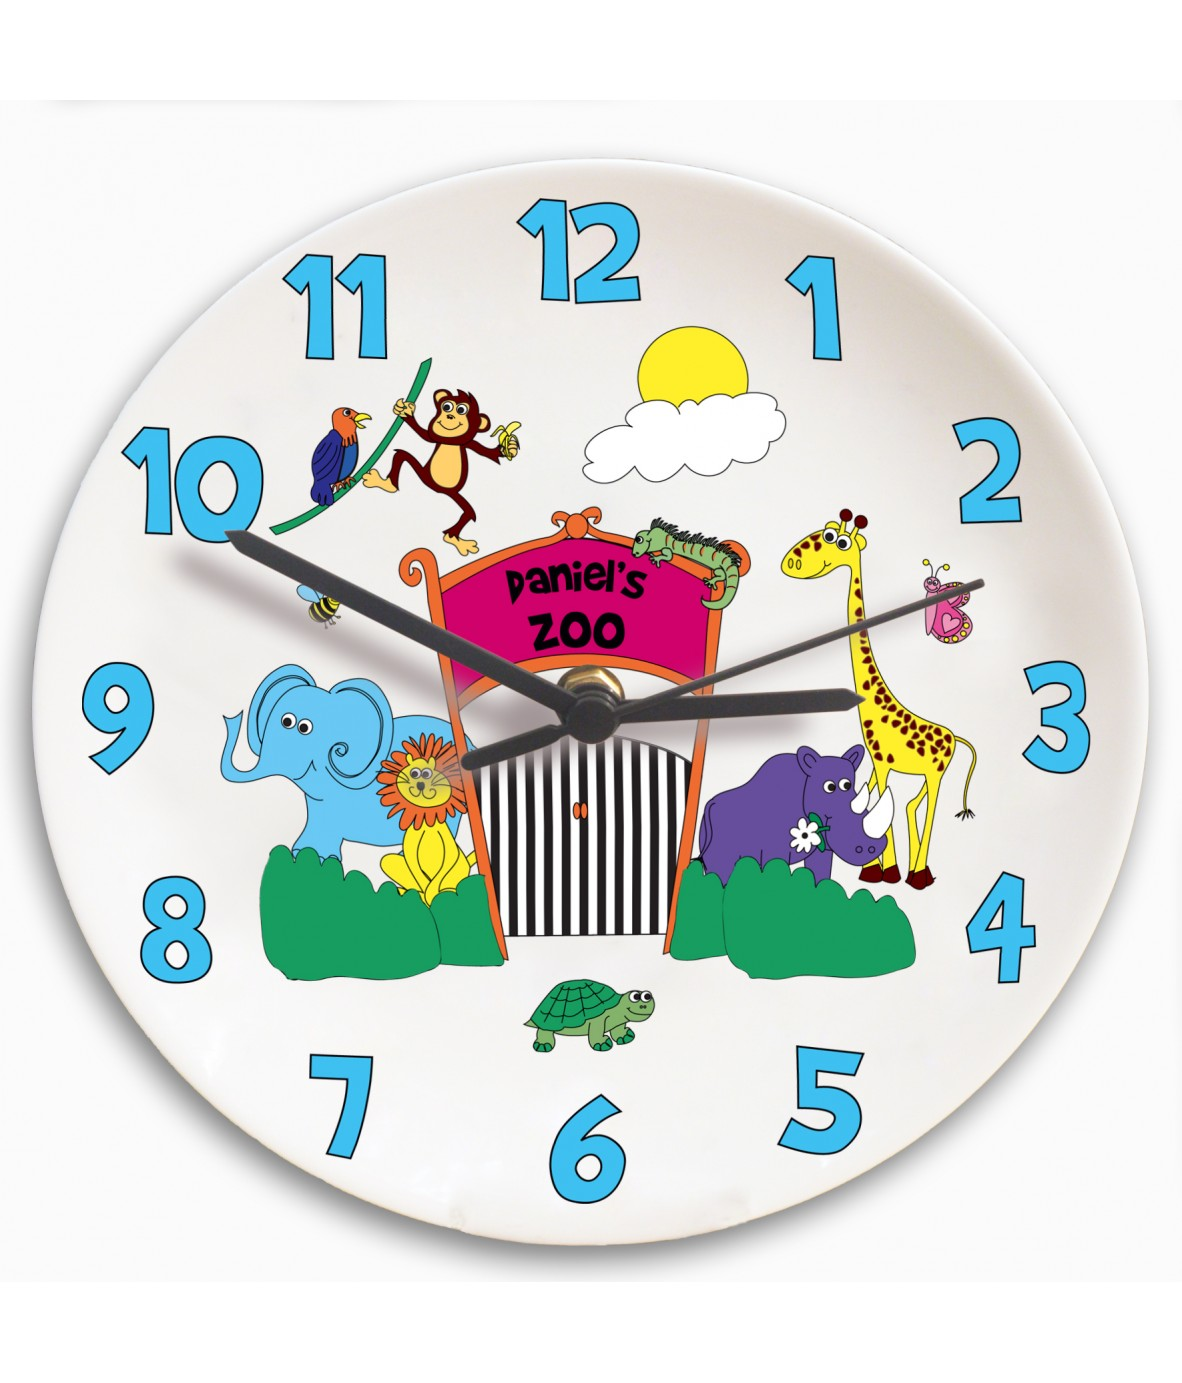 Worksheet Clock Childrens personalised clock childrens zoo just for gifts loading zoom